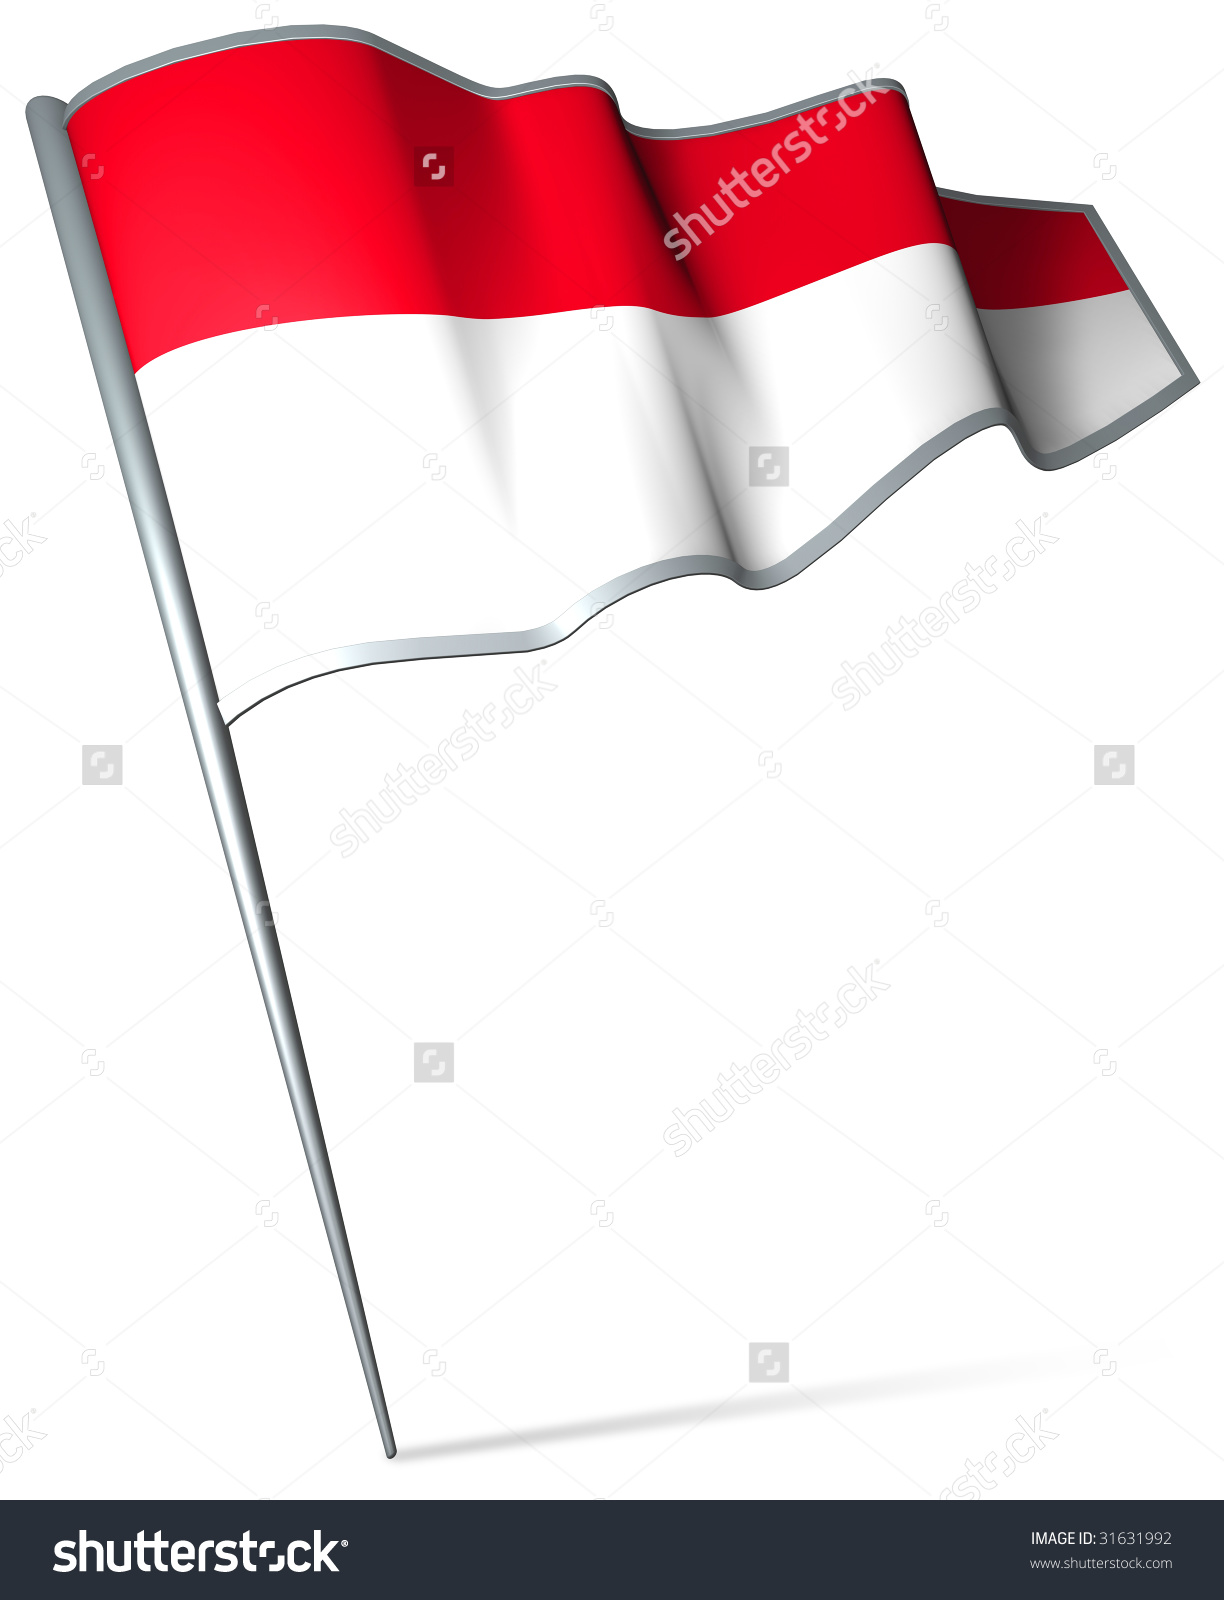 Indonesia flag clipart vector black and white download Flag Pin Indonesia Stock Illustration 31631992 - Shutterstock vector black and white download